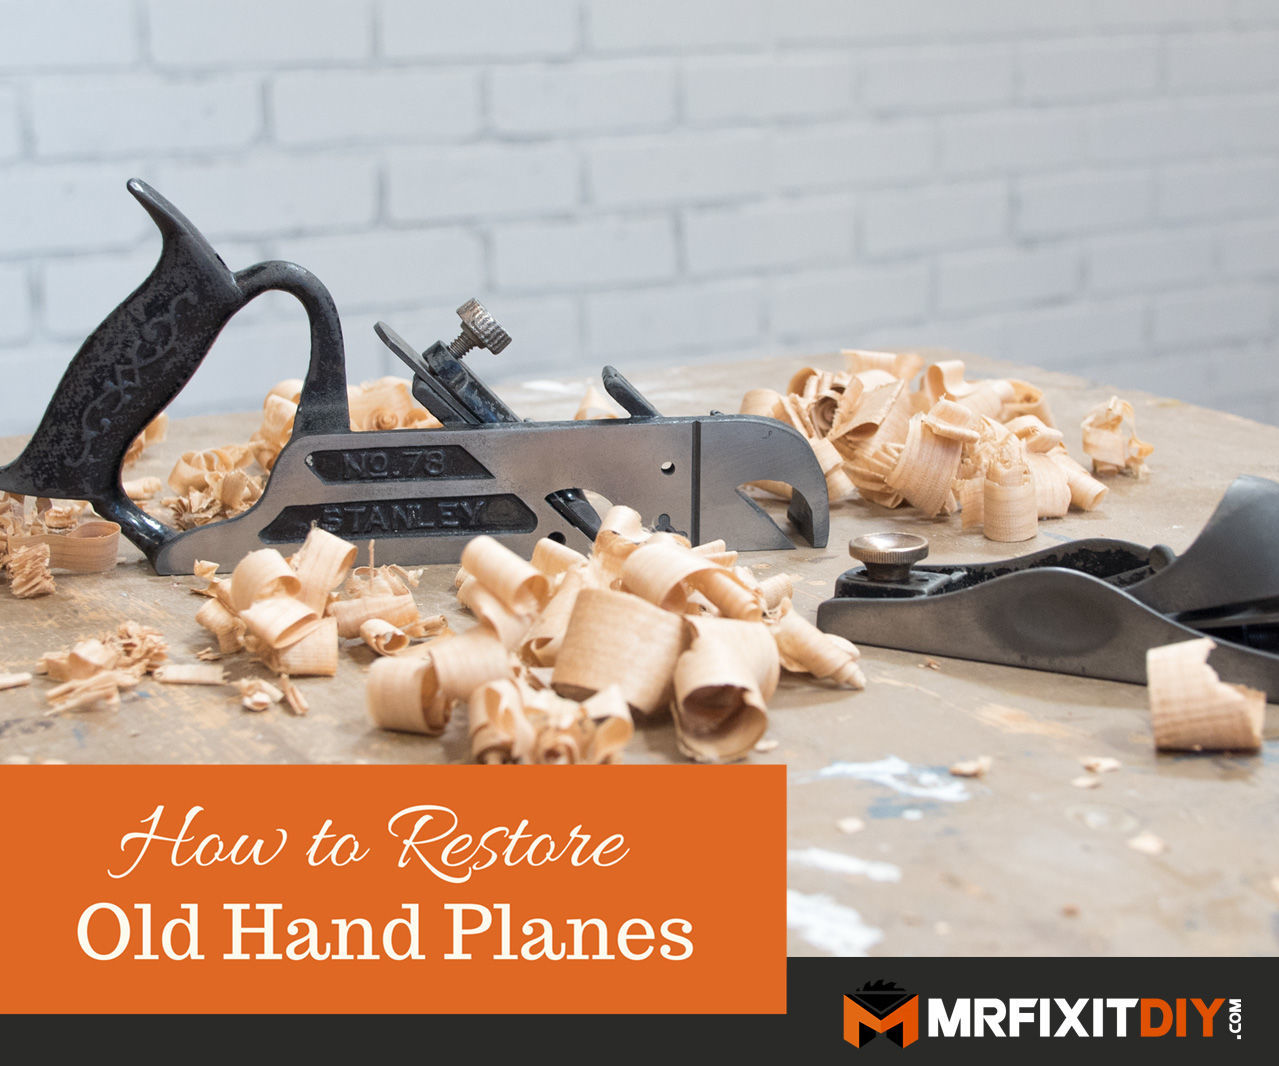 How to Restore Old Hand Planes